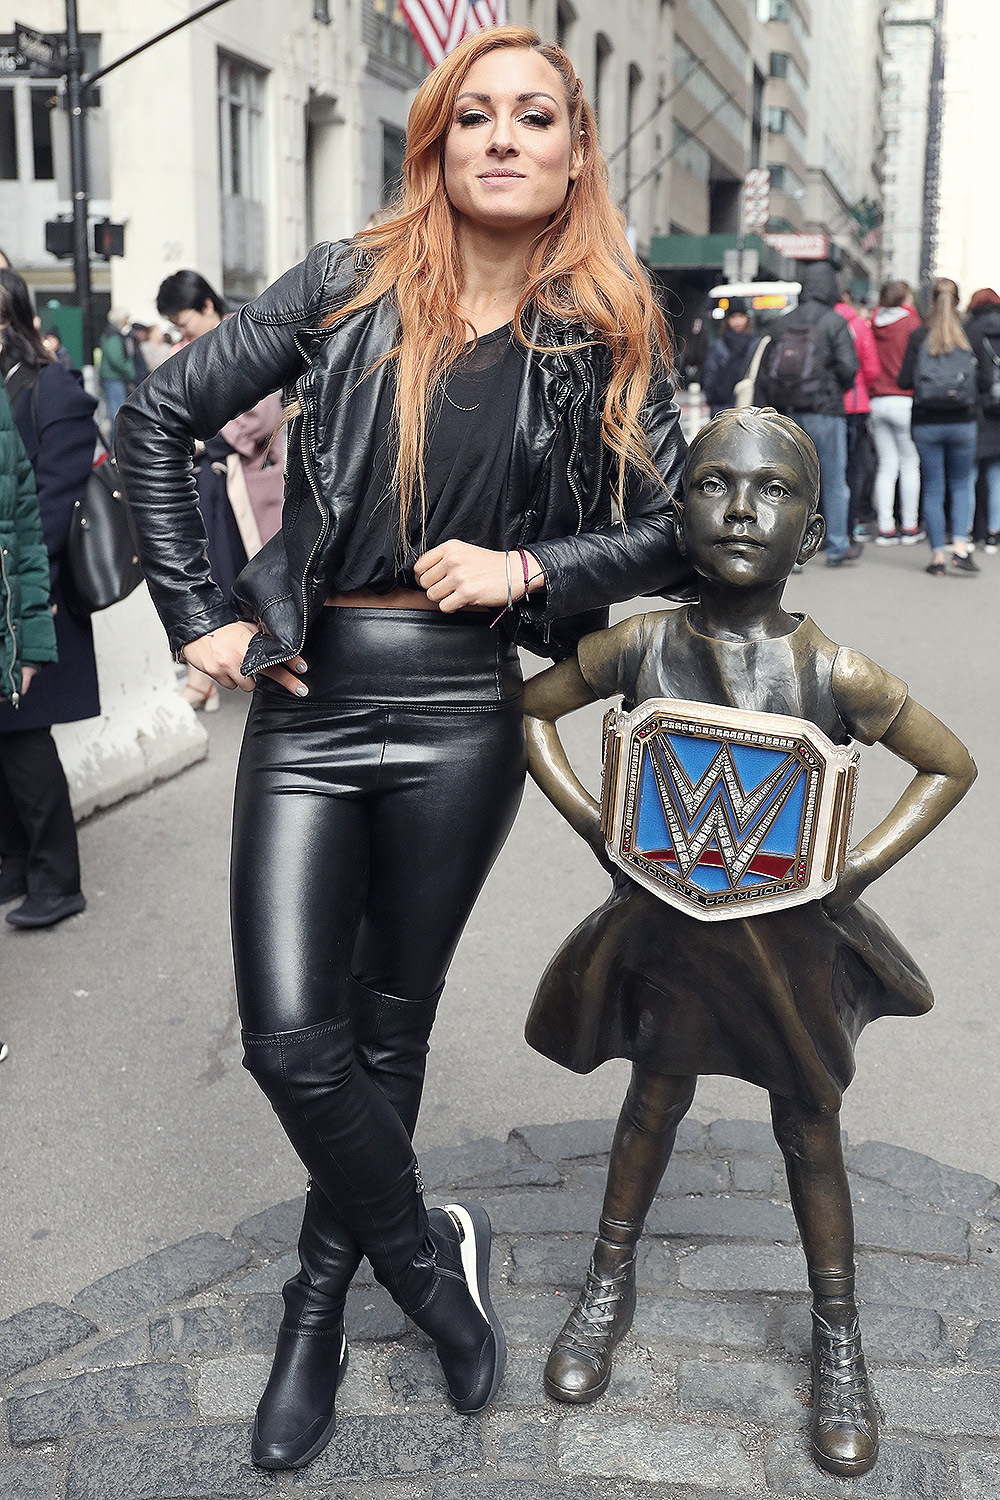 Becky Lynch at Fearless Girl statue in the Wall Street